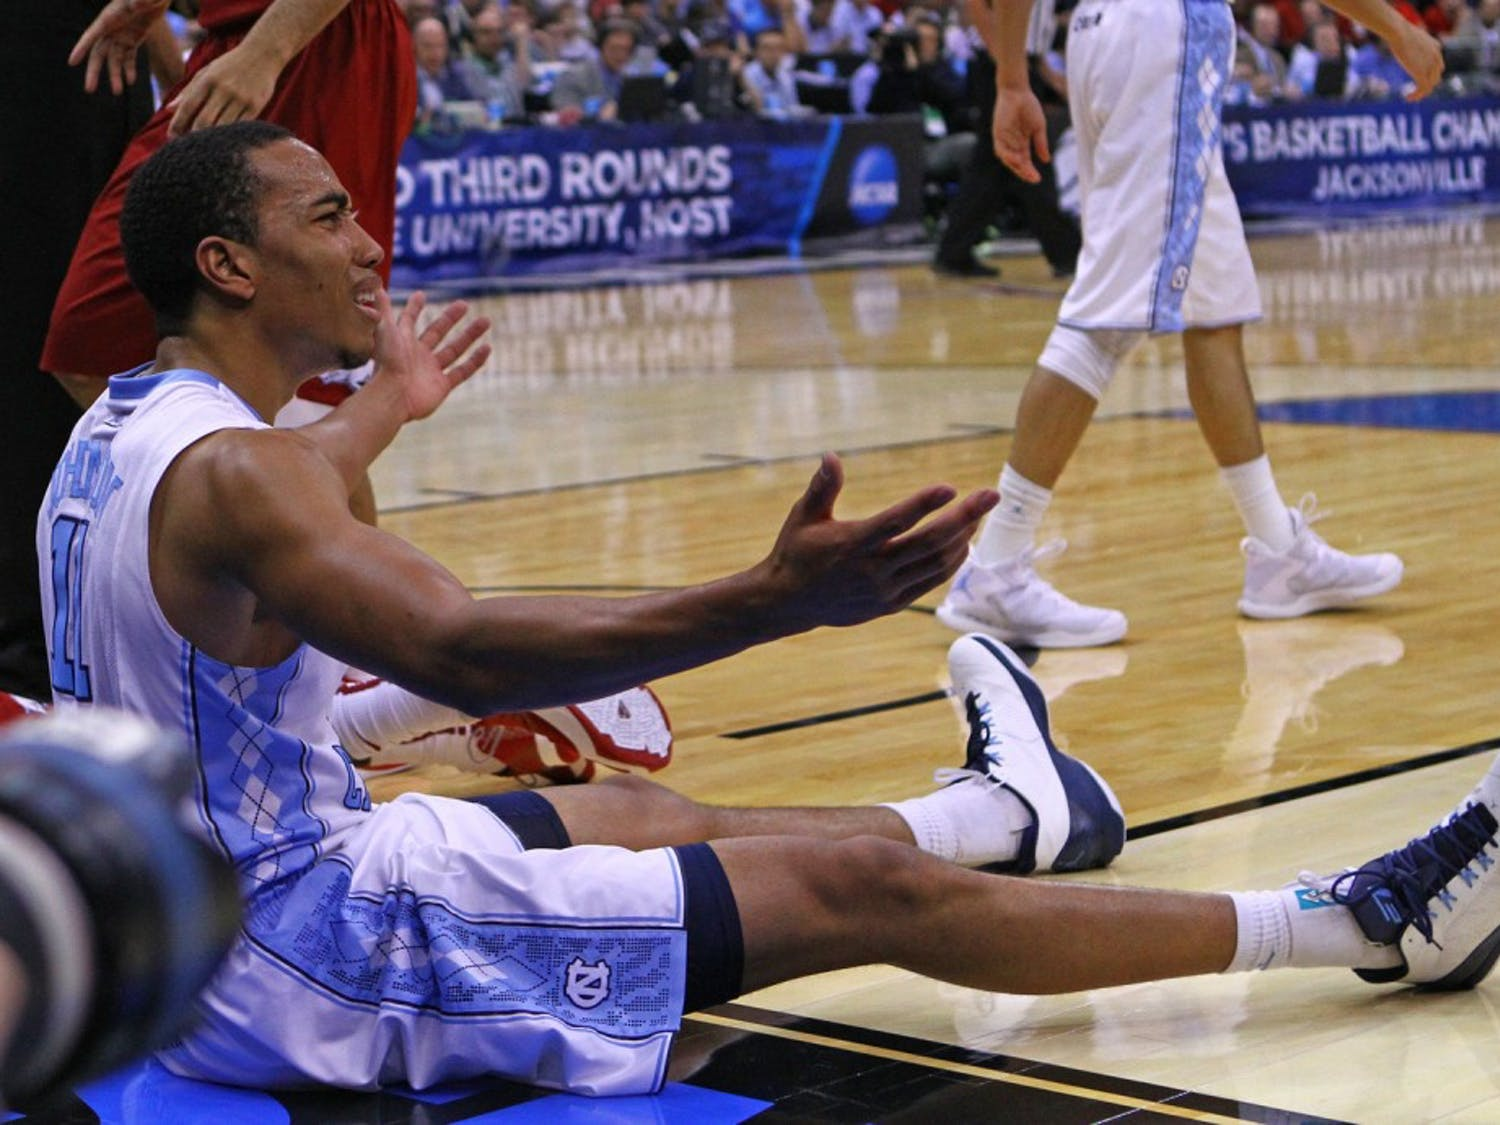 UNC forward Brice Johnson (11) reacts to a call in Saturday's game against Arkansas.The Tar Heels defeated the Arkansas Razorbacks, 87-78, on Saturday in Jacksonville, Fla.